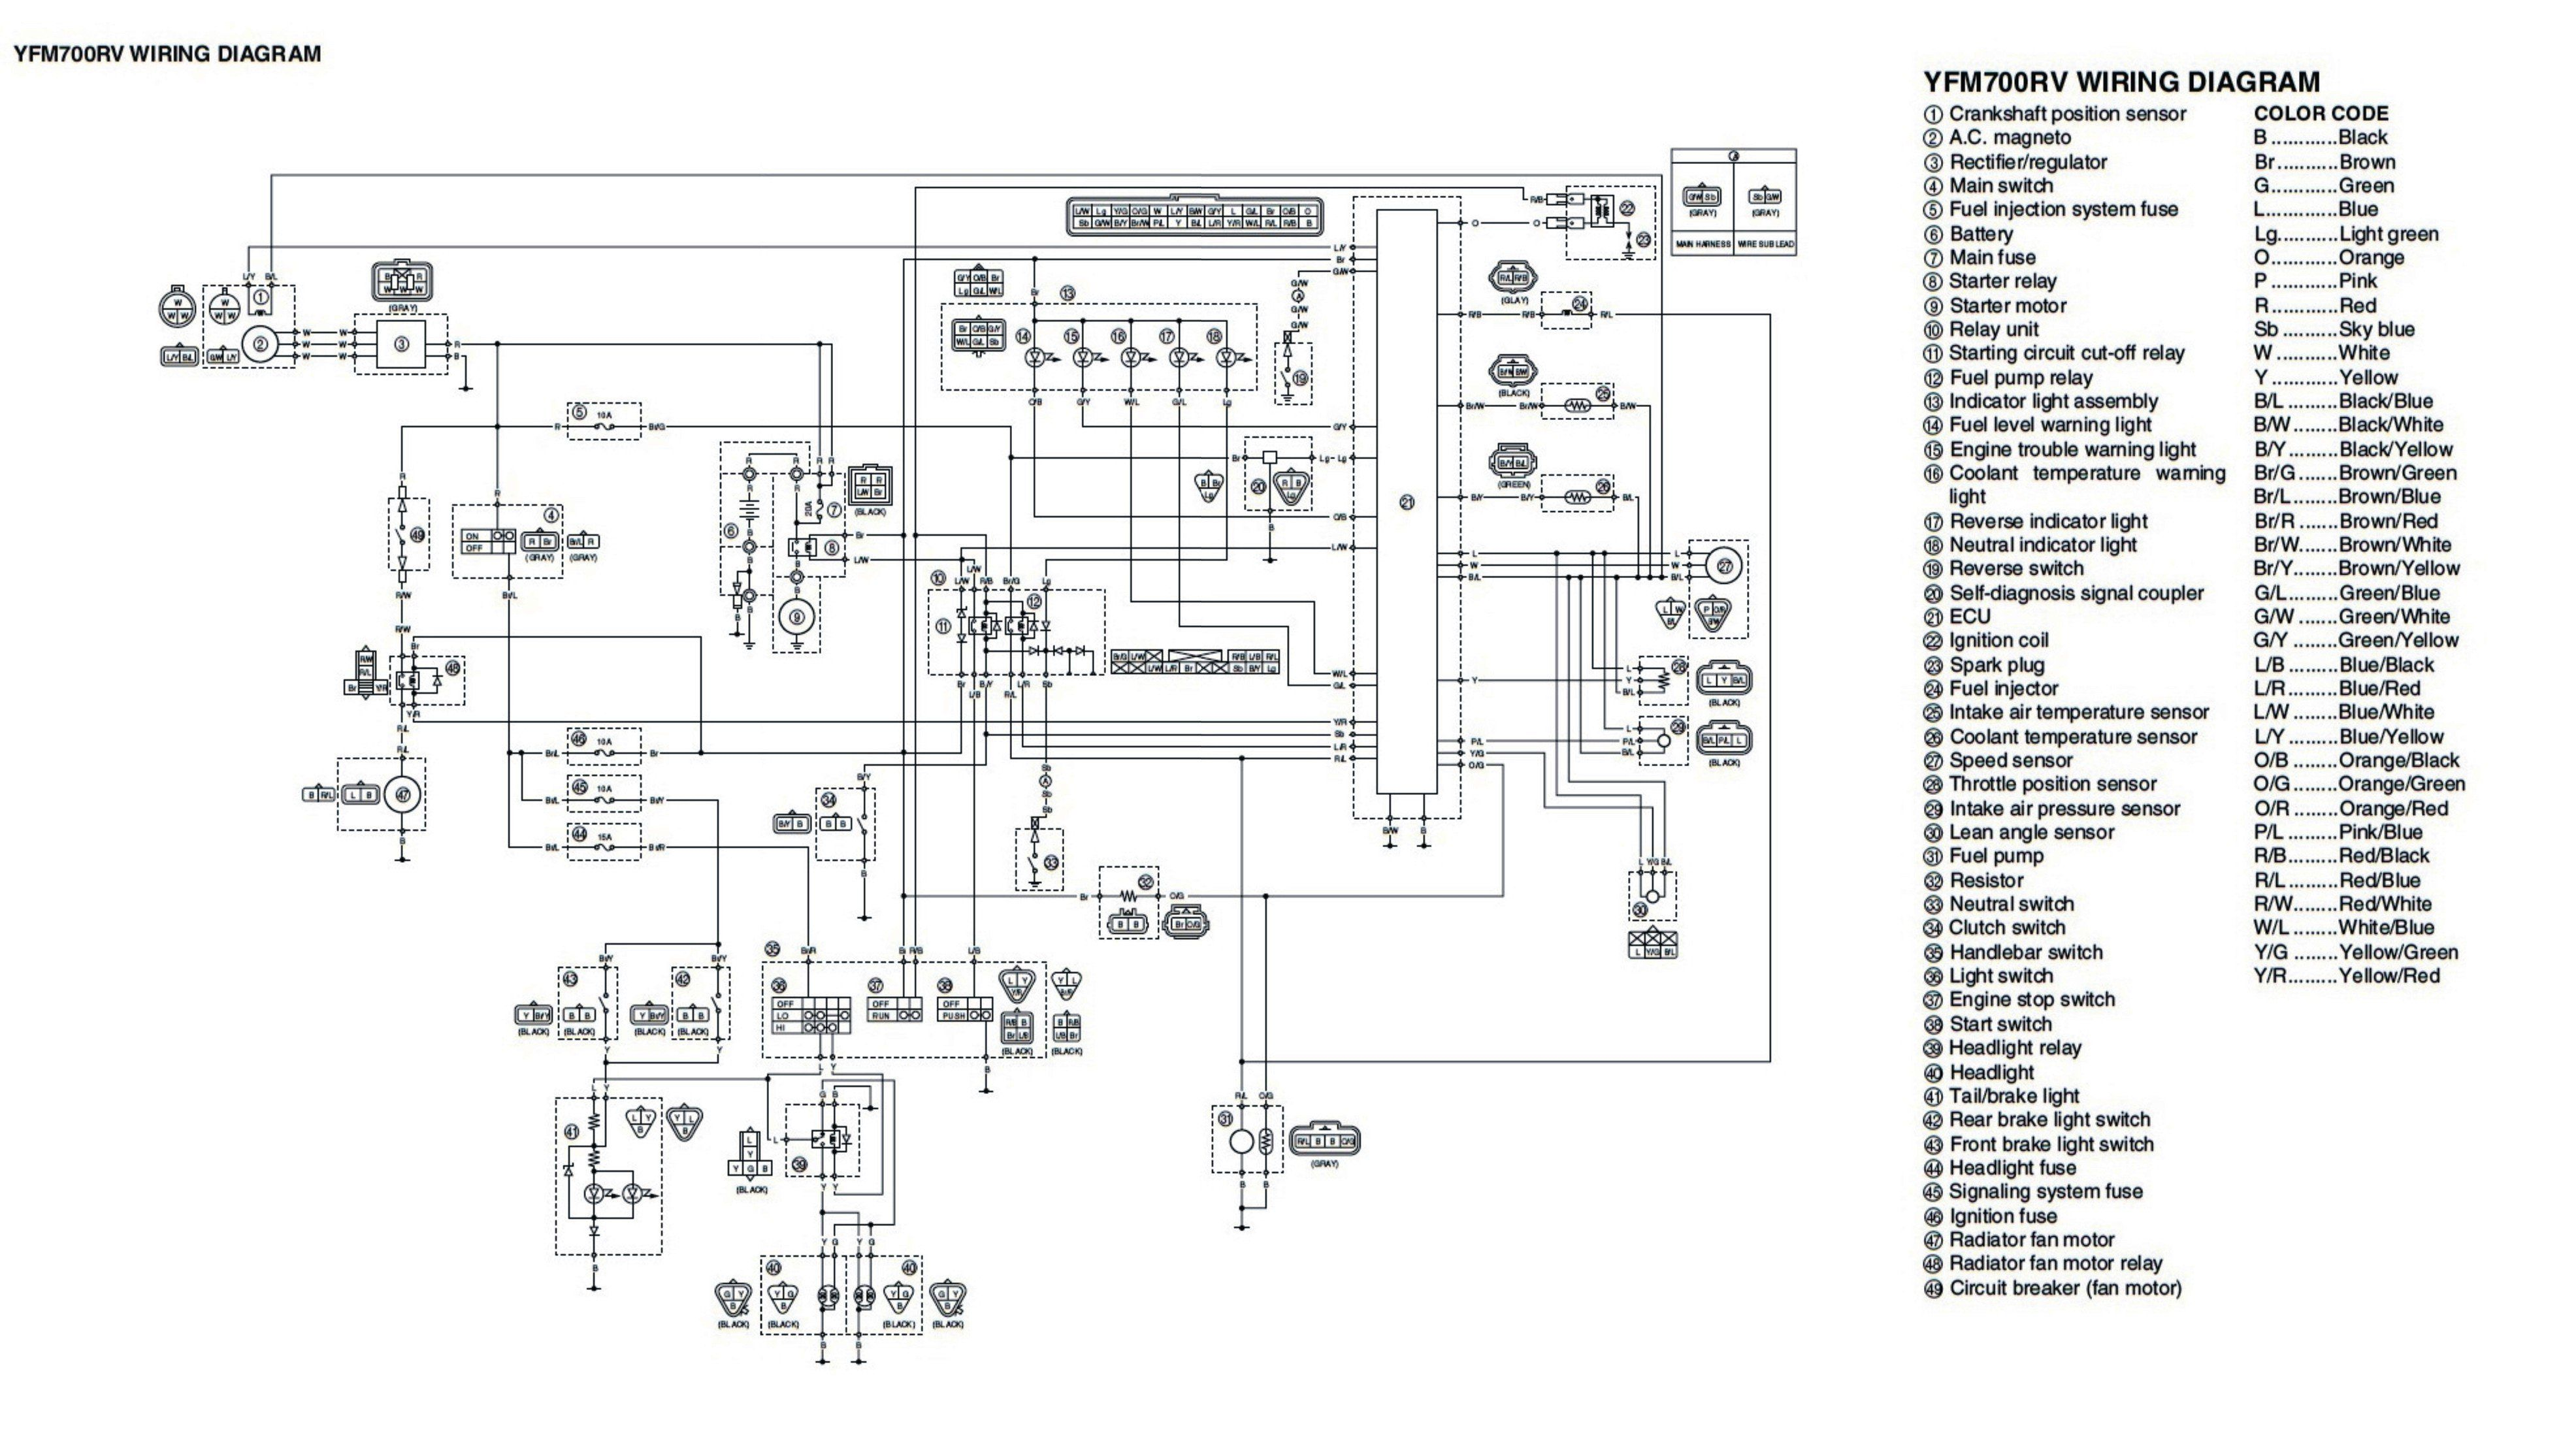 yamaha grizzly 660 fuse box md 9230  raptor 700r 12v wiring diagram wiring diagram  raptor 700r 12v wiring diagram wiring